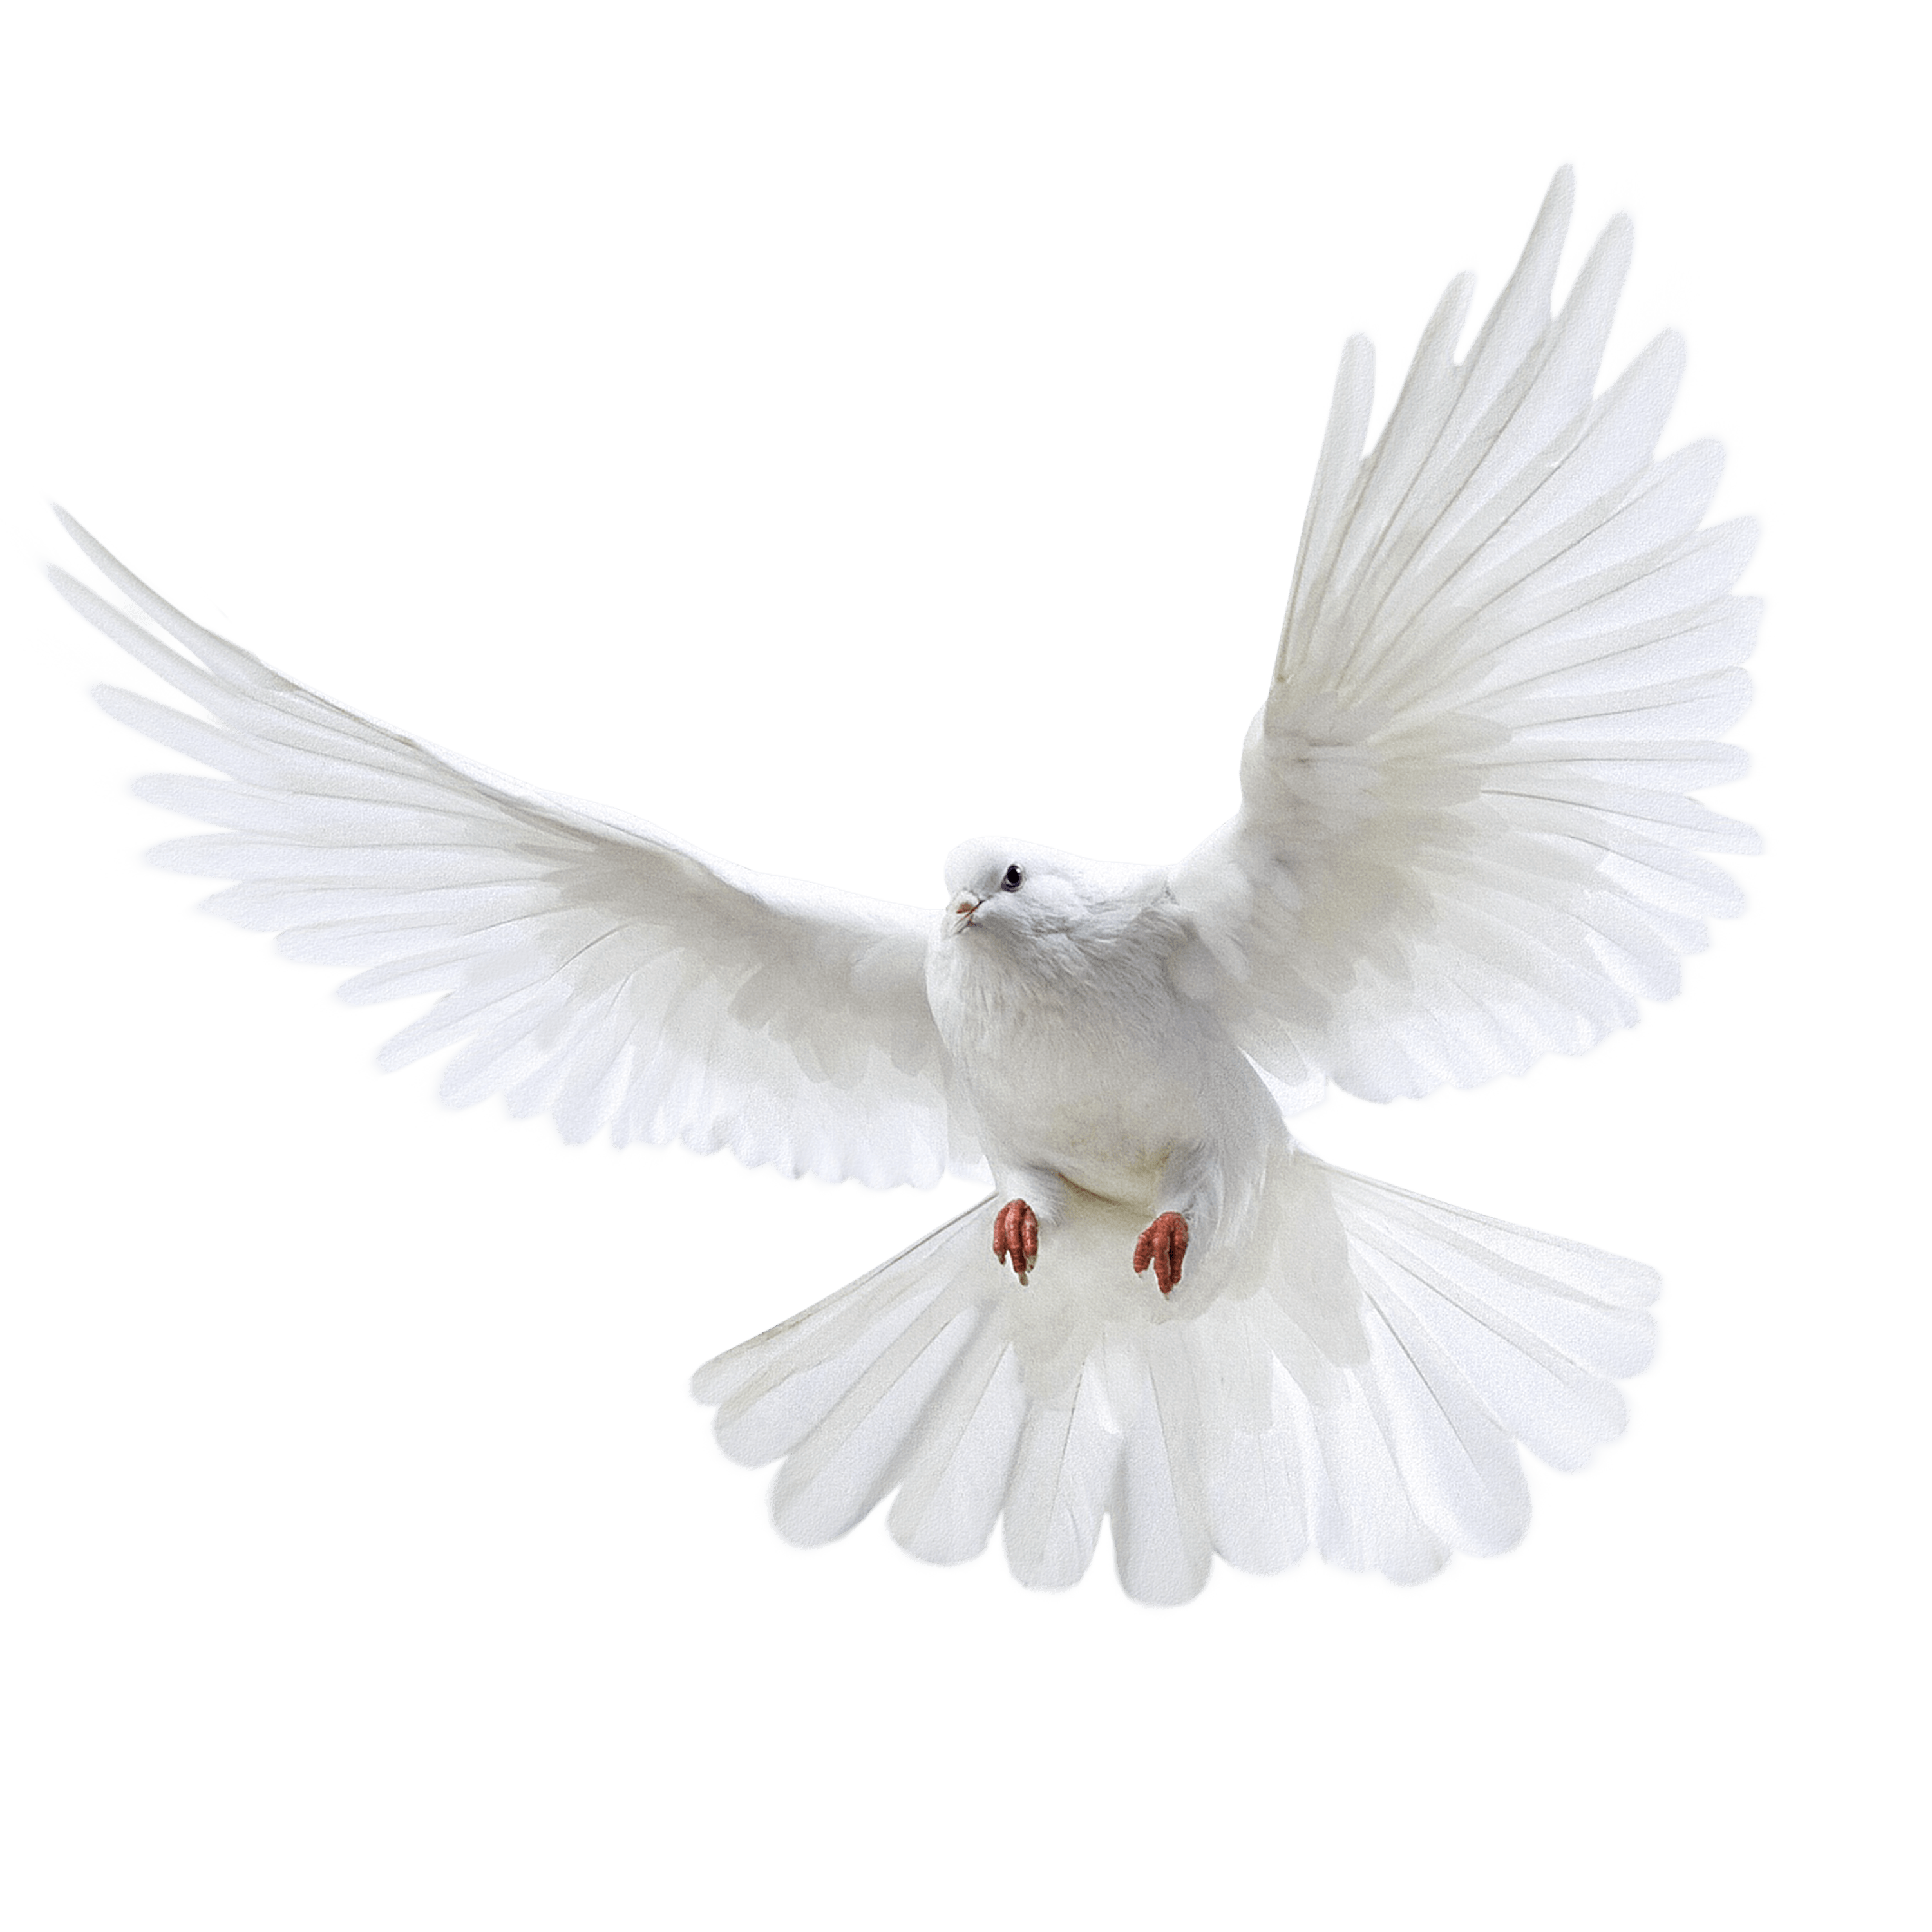 White Flying Pigeon Png Image PNG Image - Pigeon PNG